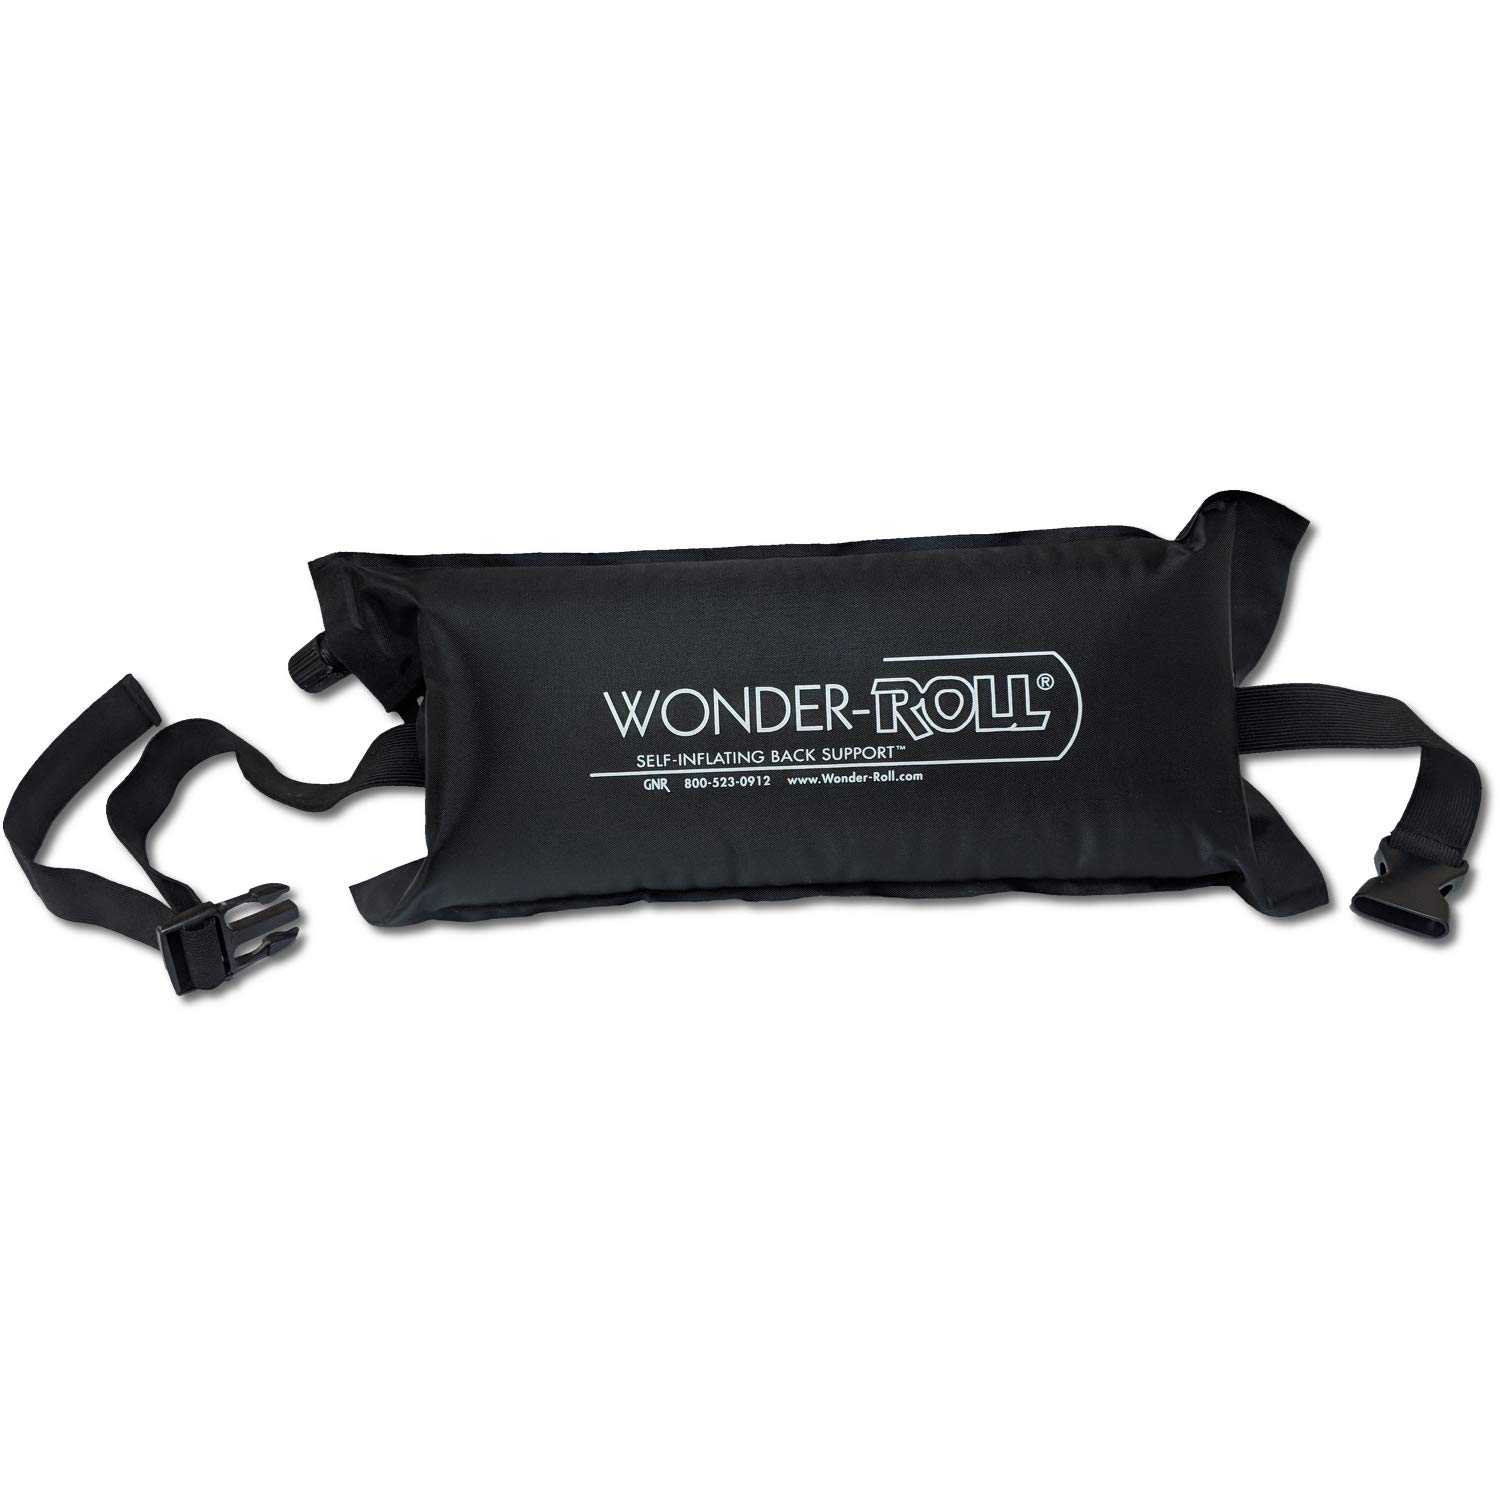 GNR Wonder-Roll Self-Inflating Back Support by GNR Health Systems, Inc.